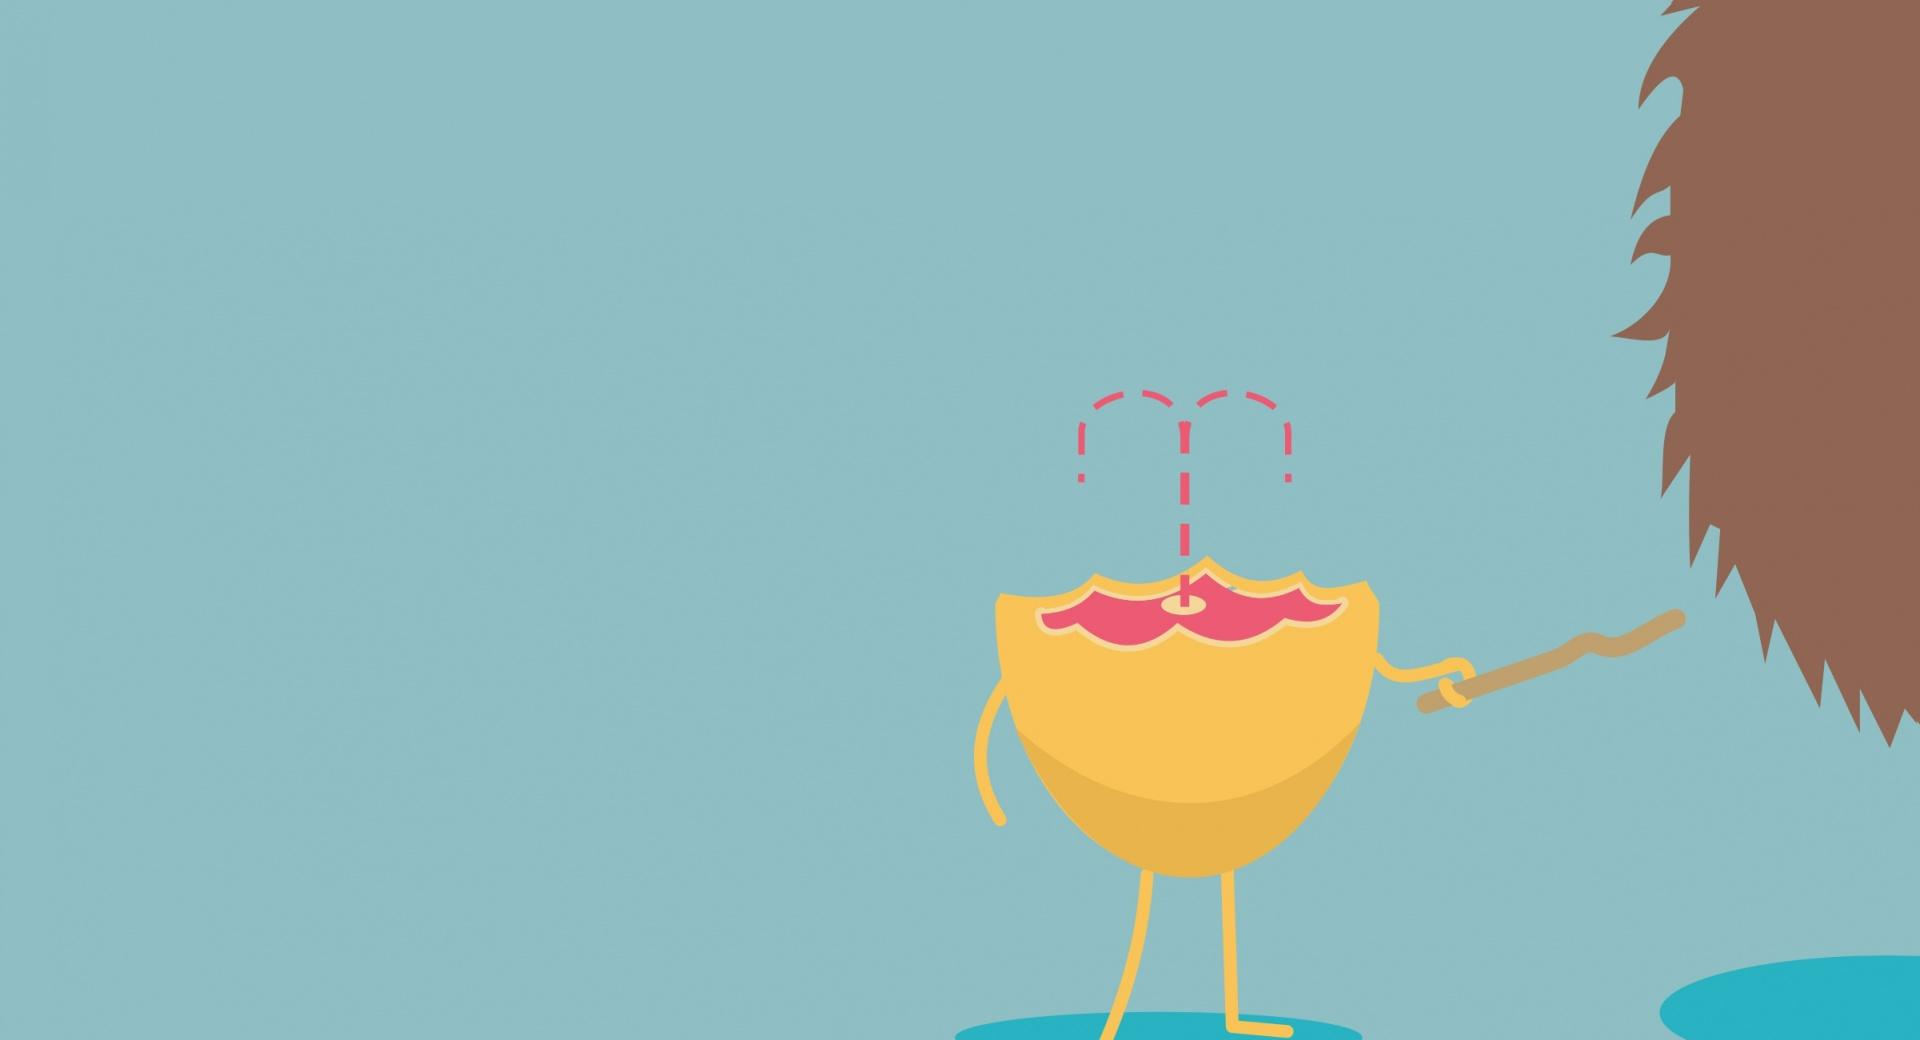 DumbWaysToDie PokeAGrizzlyBearWithAStick wallpapers HD quality